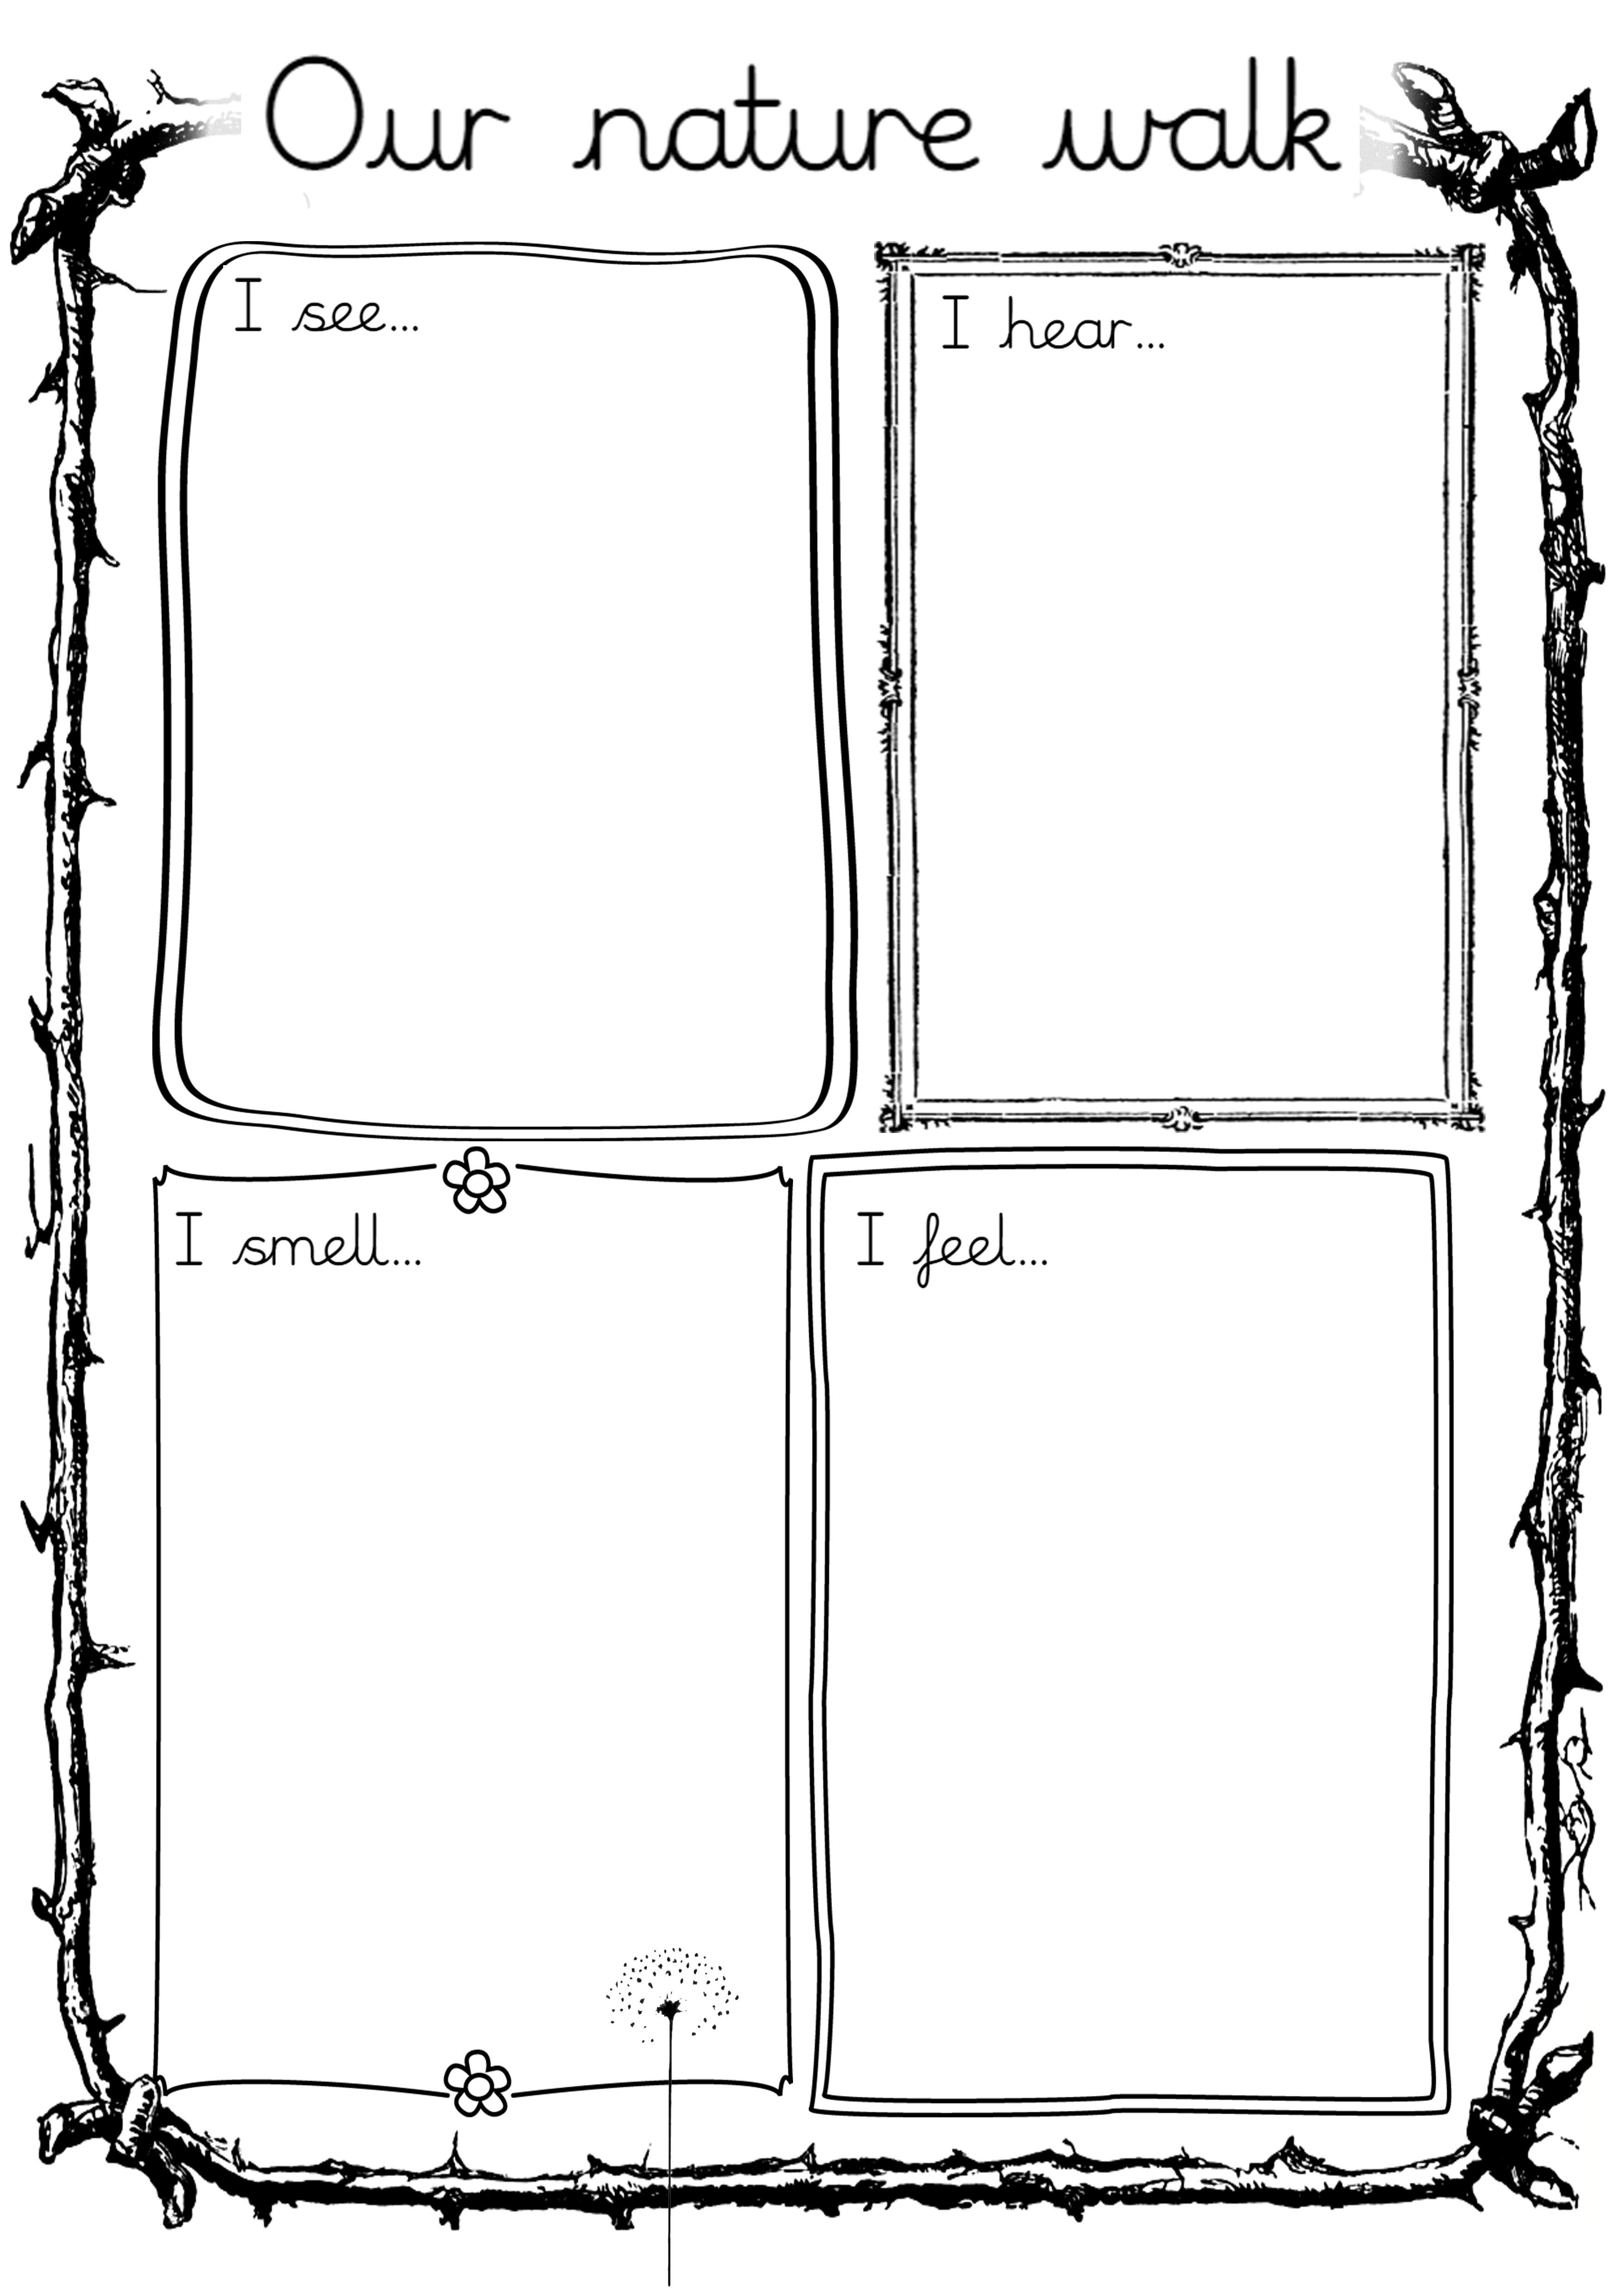 nature walk worksheet gardening planting walking in nature nature activities science. Black Bedroom Furniture Sets. Home Design Ideas